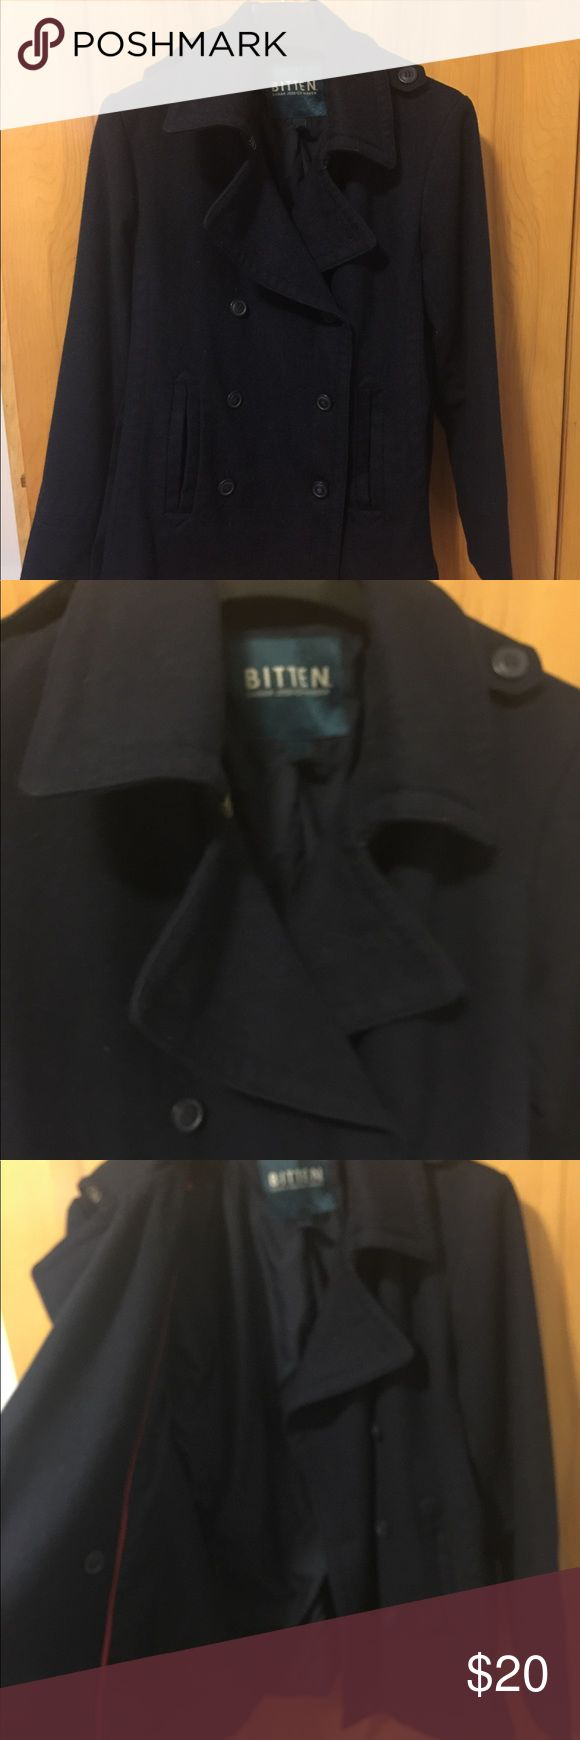 Bitten by Sarah Jessica Parker Navy Pea Coat XL Bitten by Sarah Jessica Parker Navy Pea Coat from Steve & Barry's Size XL Shorter length: lays at hip area. Really flattering and cute! SJP by Sarah Jessica Parker Jackets & Coats Pea Coats